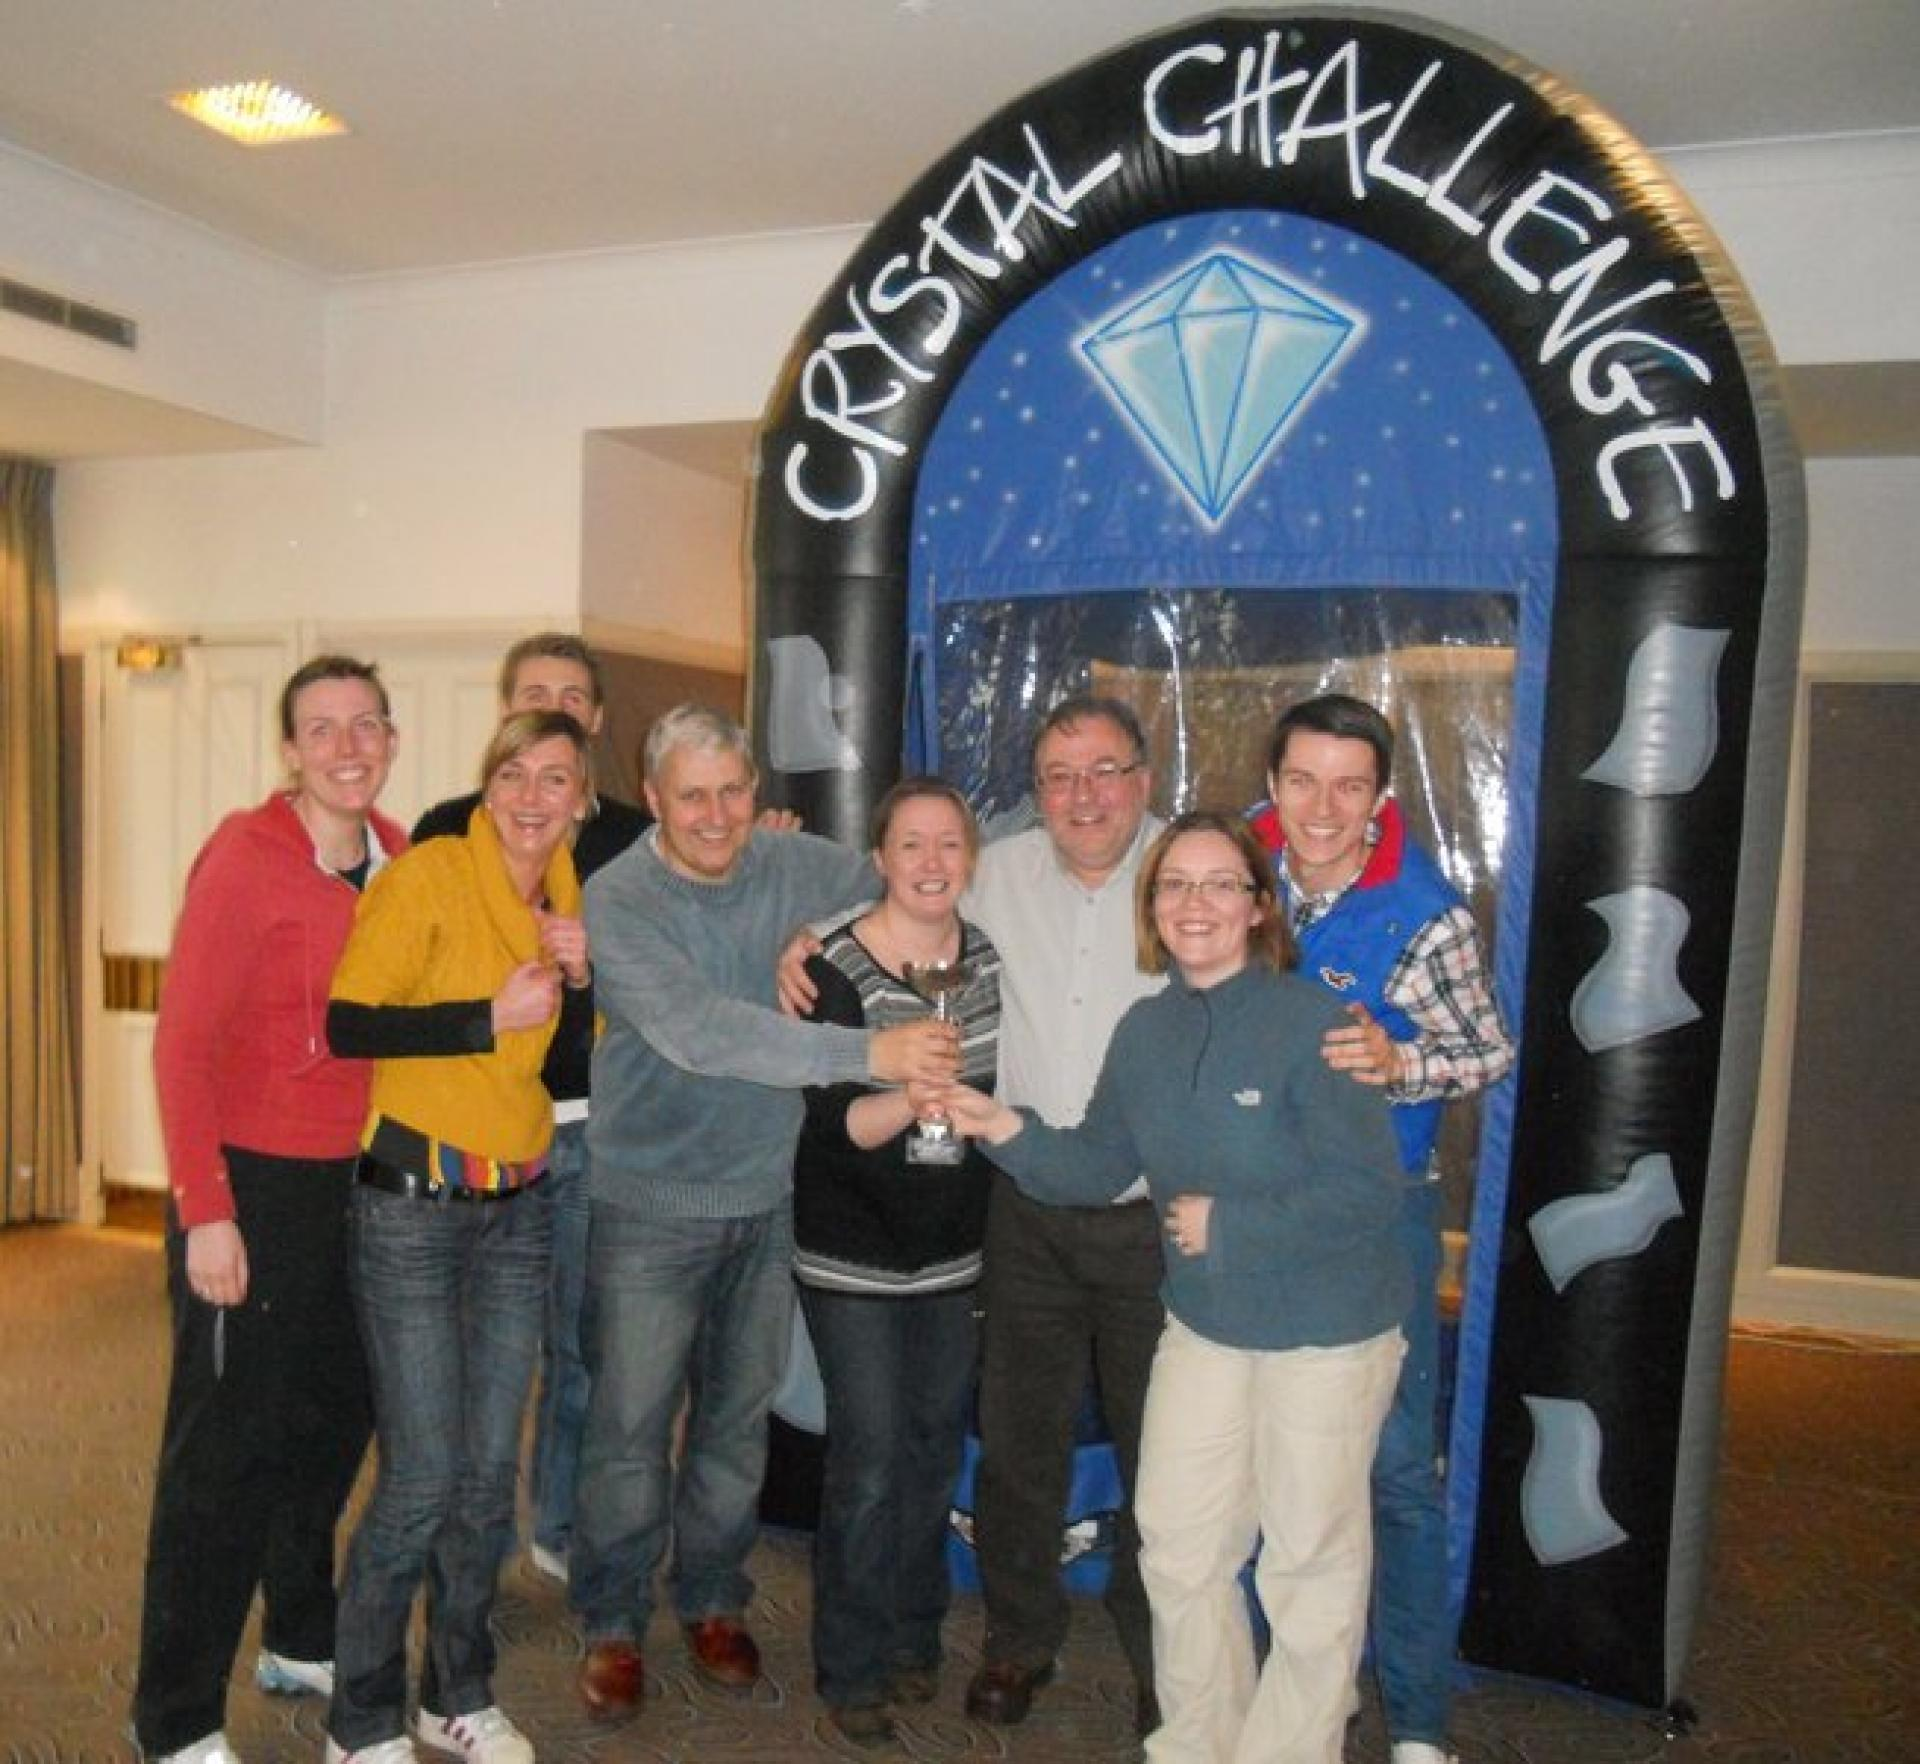 Team Building Crystal Challenge Aberdeen April 2012